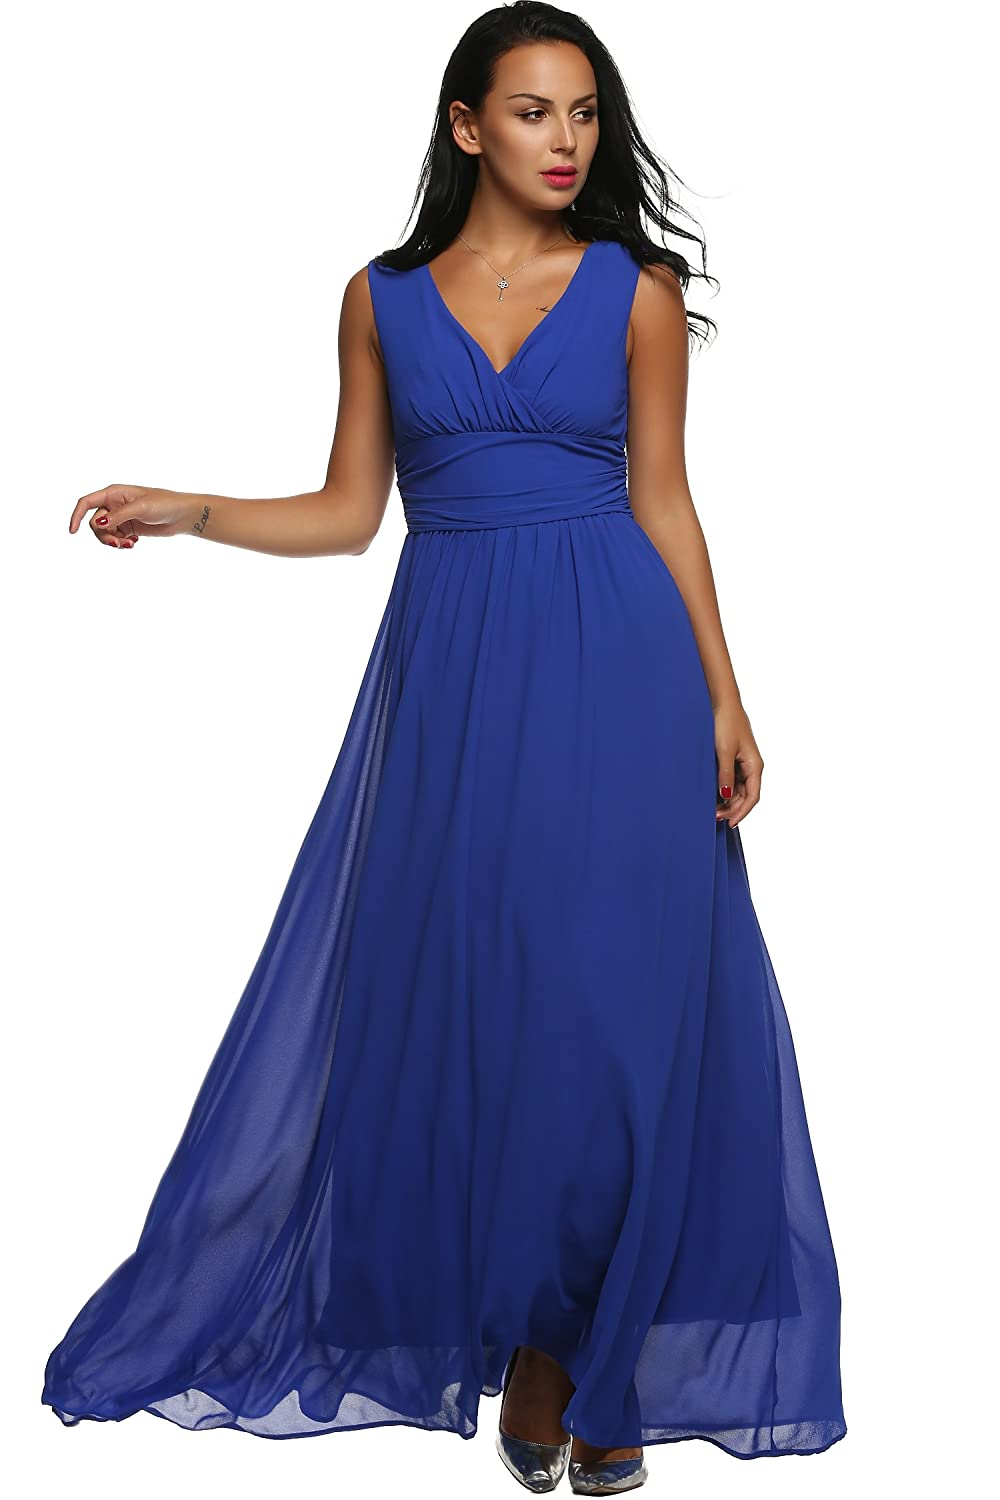 ANGVNS Chiffon Dress Sleeveless Ruched Waist Double V-neck Long Evening Dress